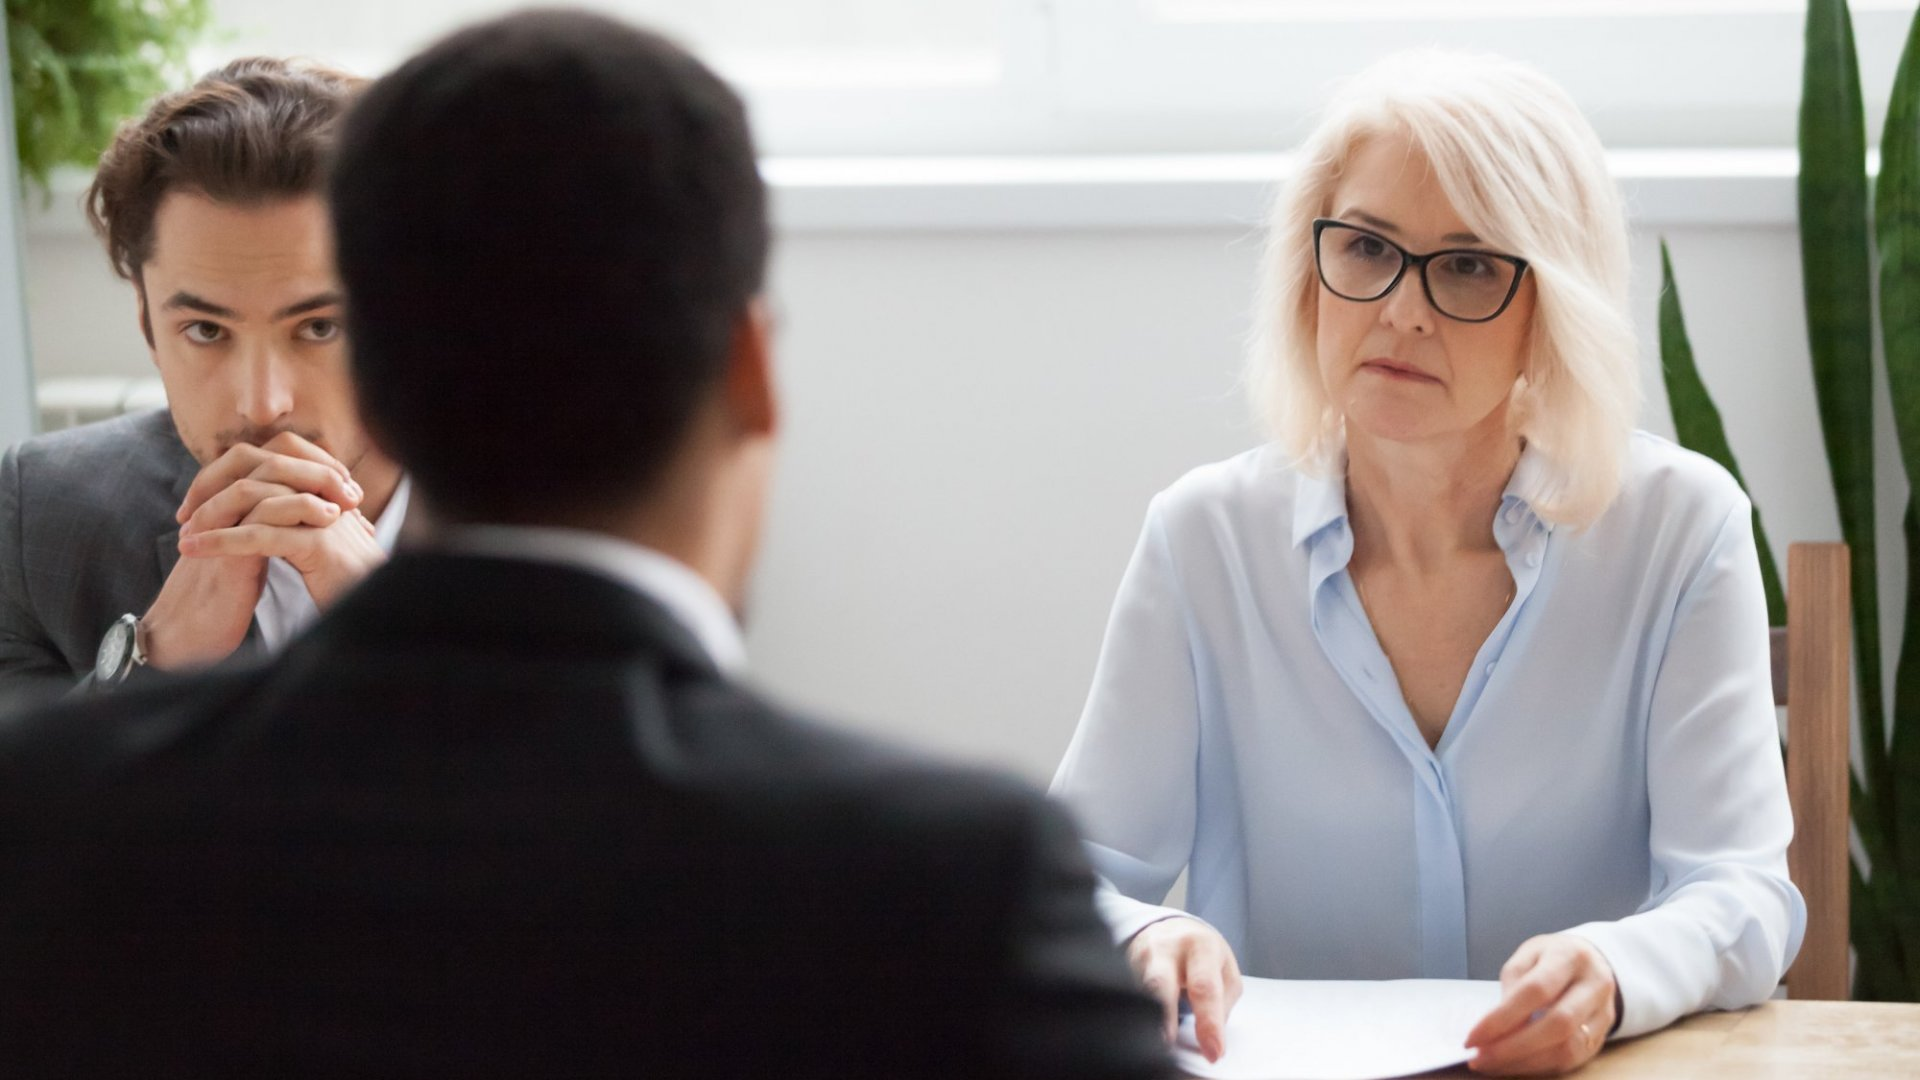 9 Ways to Avoid Ageism When Hiring